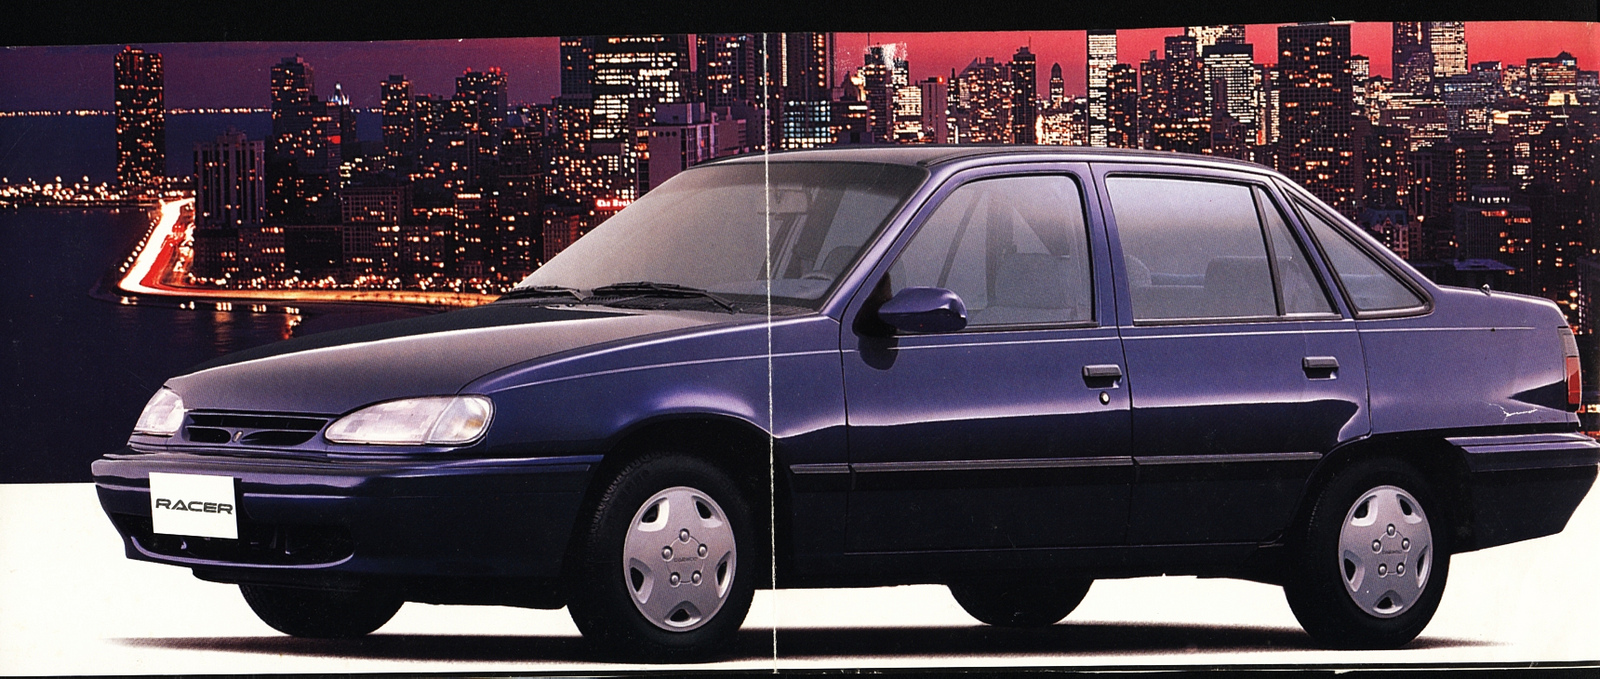 Daewoo RACER GTI 1996 | Flickr - Photo Sharing!